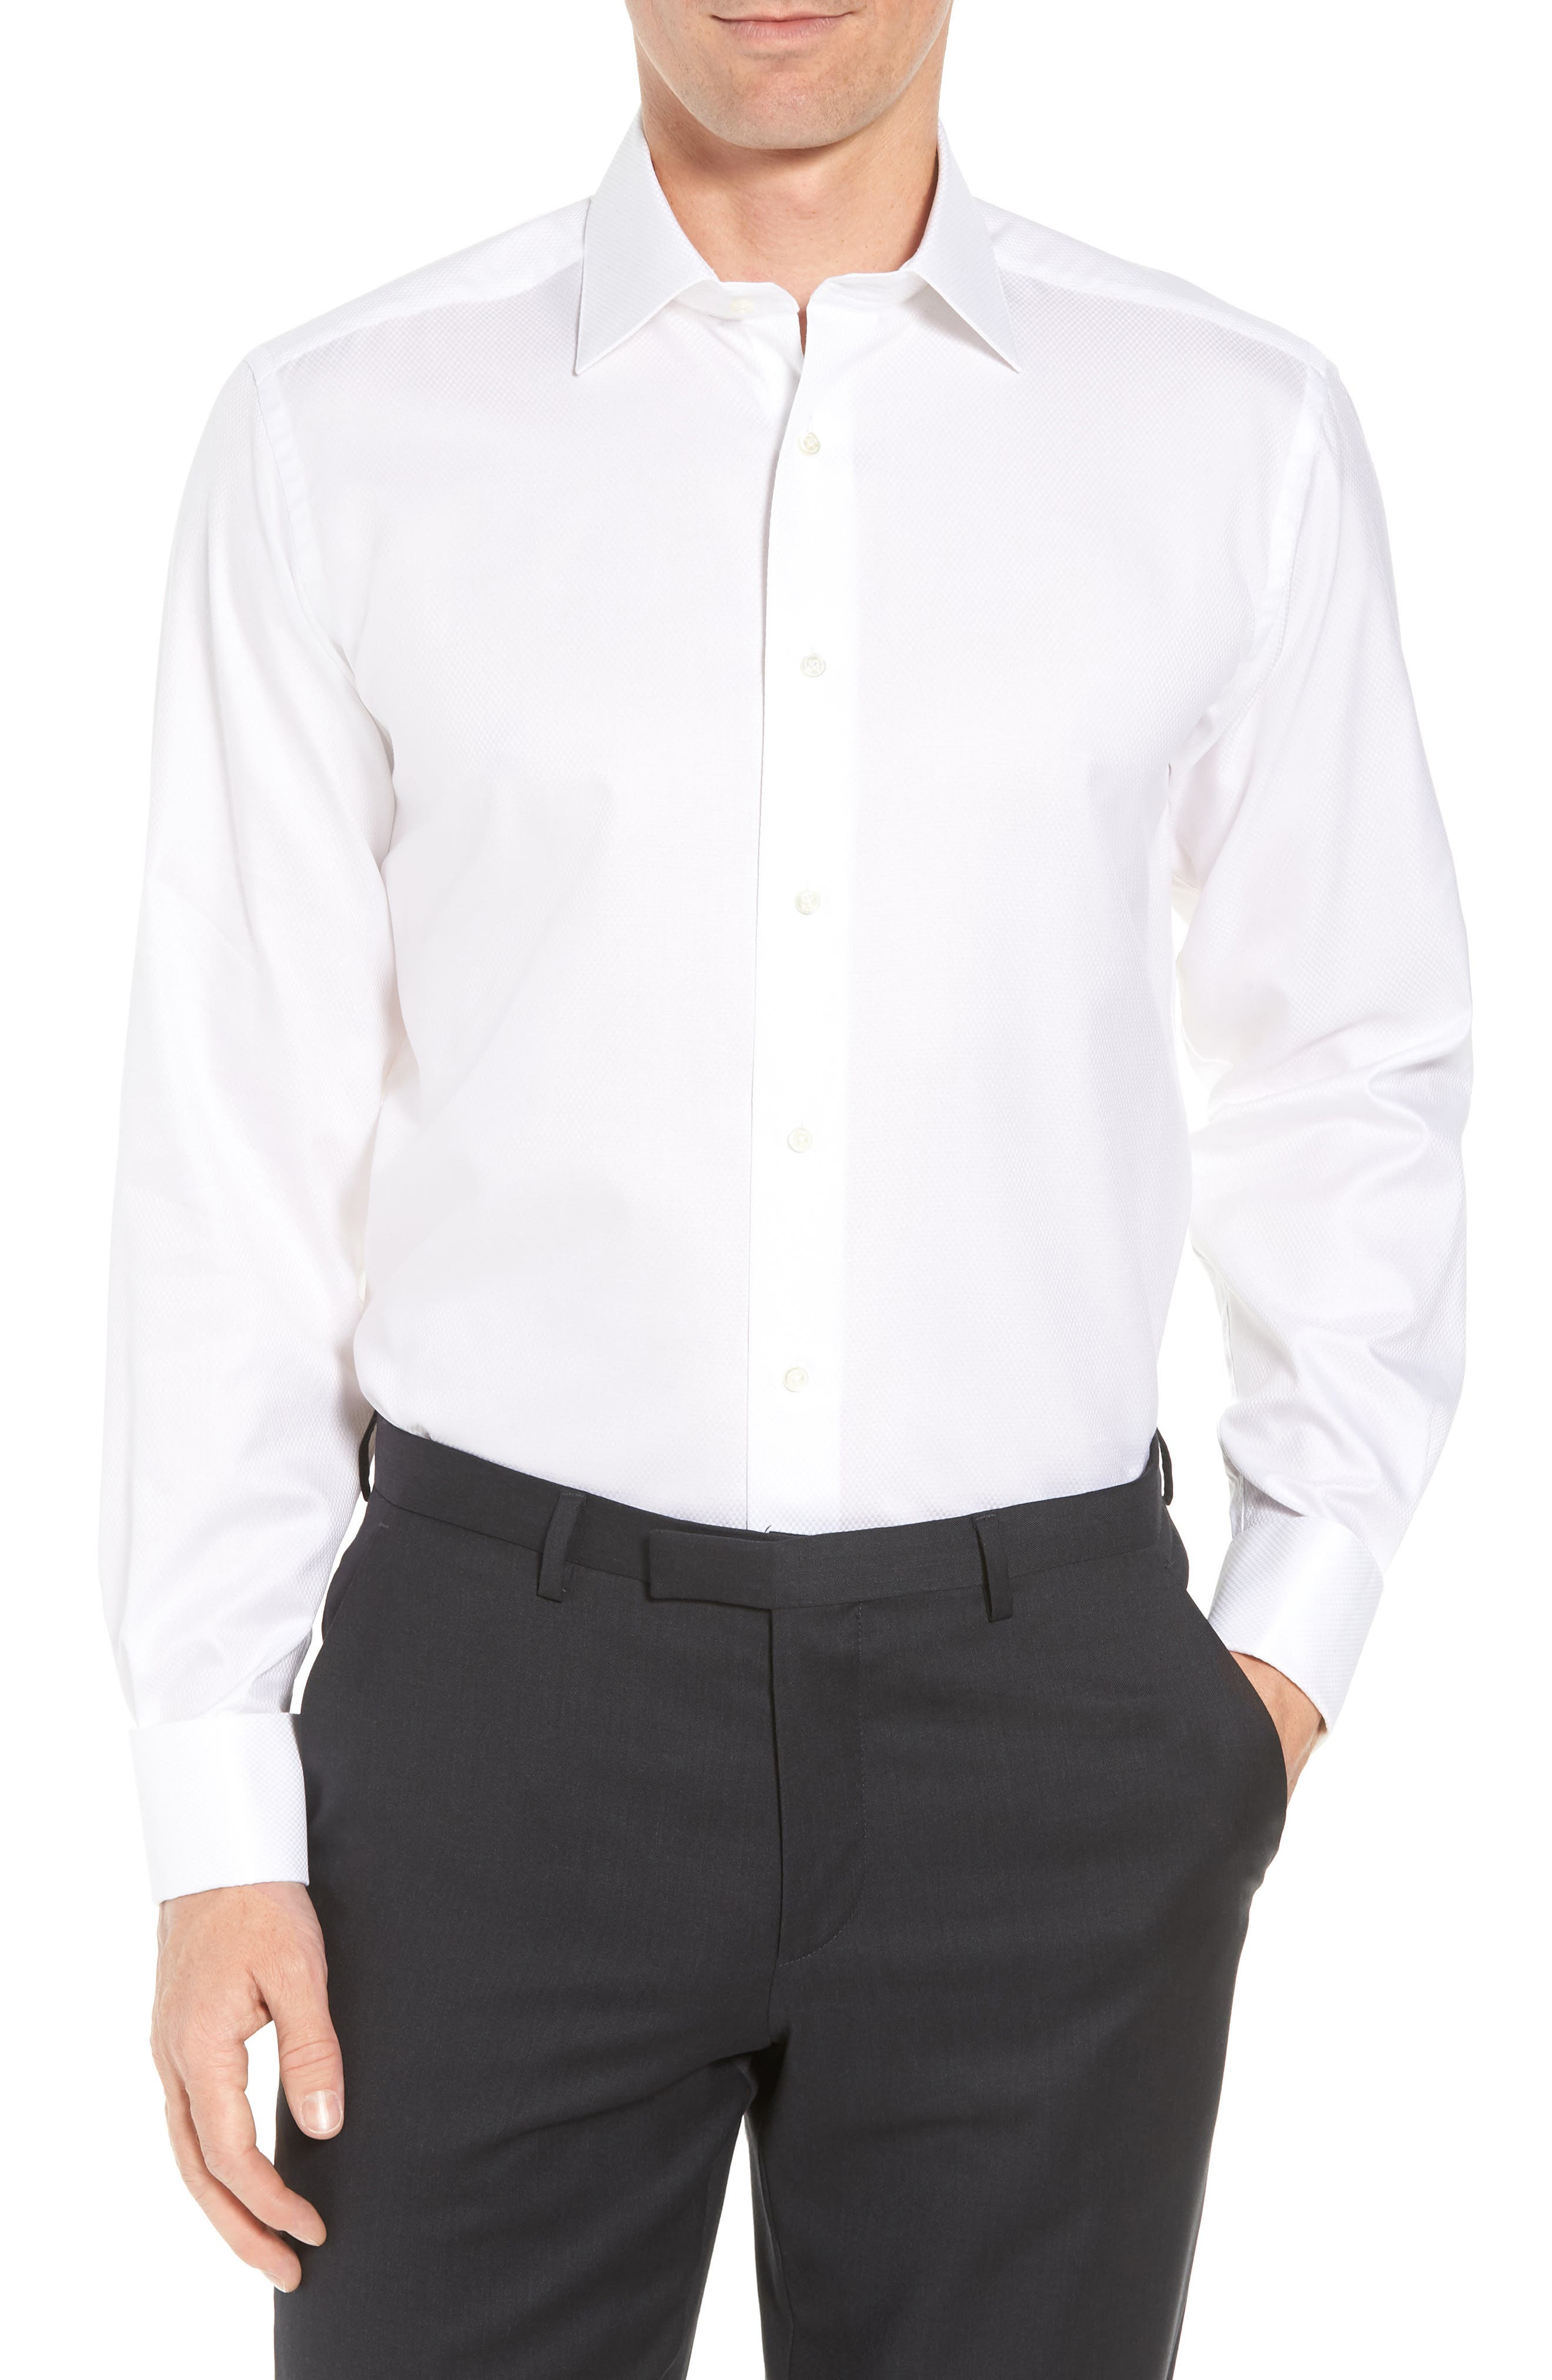 DAVID DONAHUE, Regular Fit Solid French Cuff Tuxedo Shirt, Main thumbnail 1, color, WHITE / WHITE